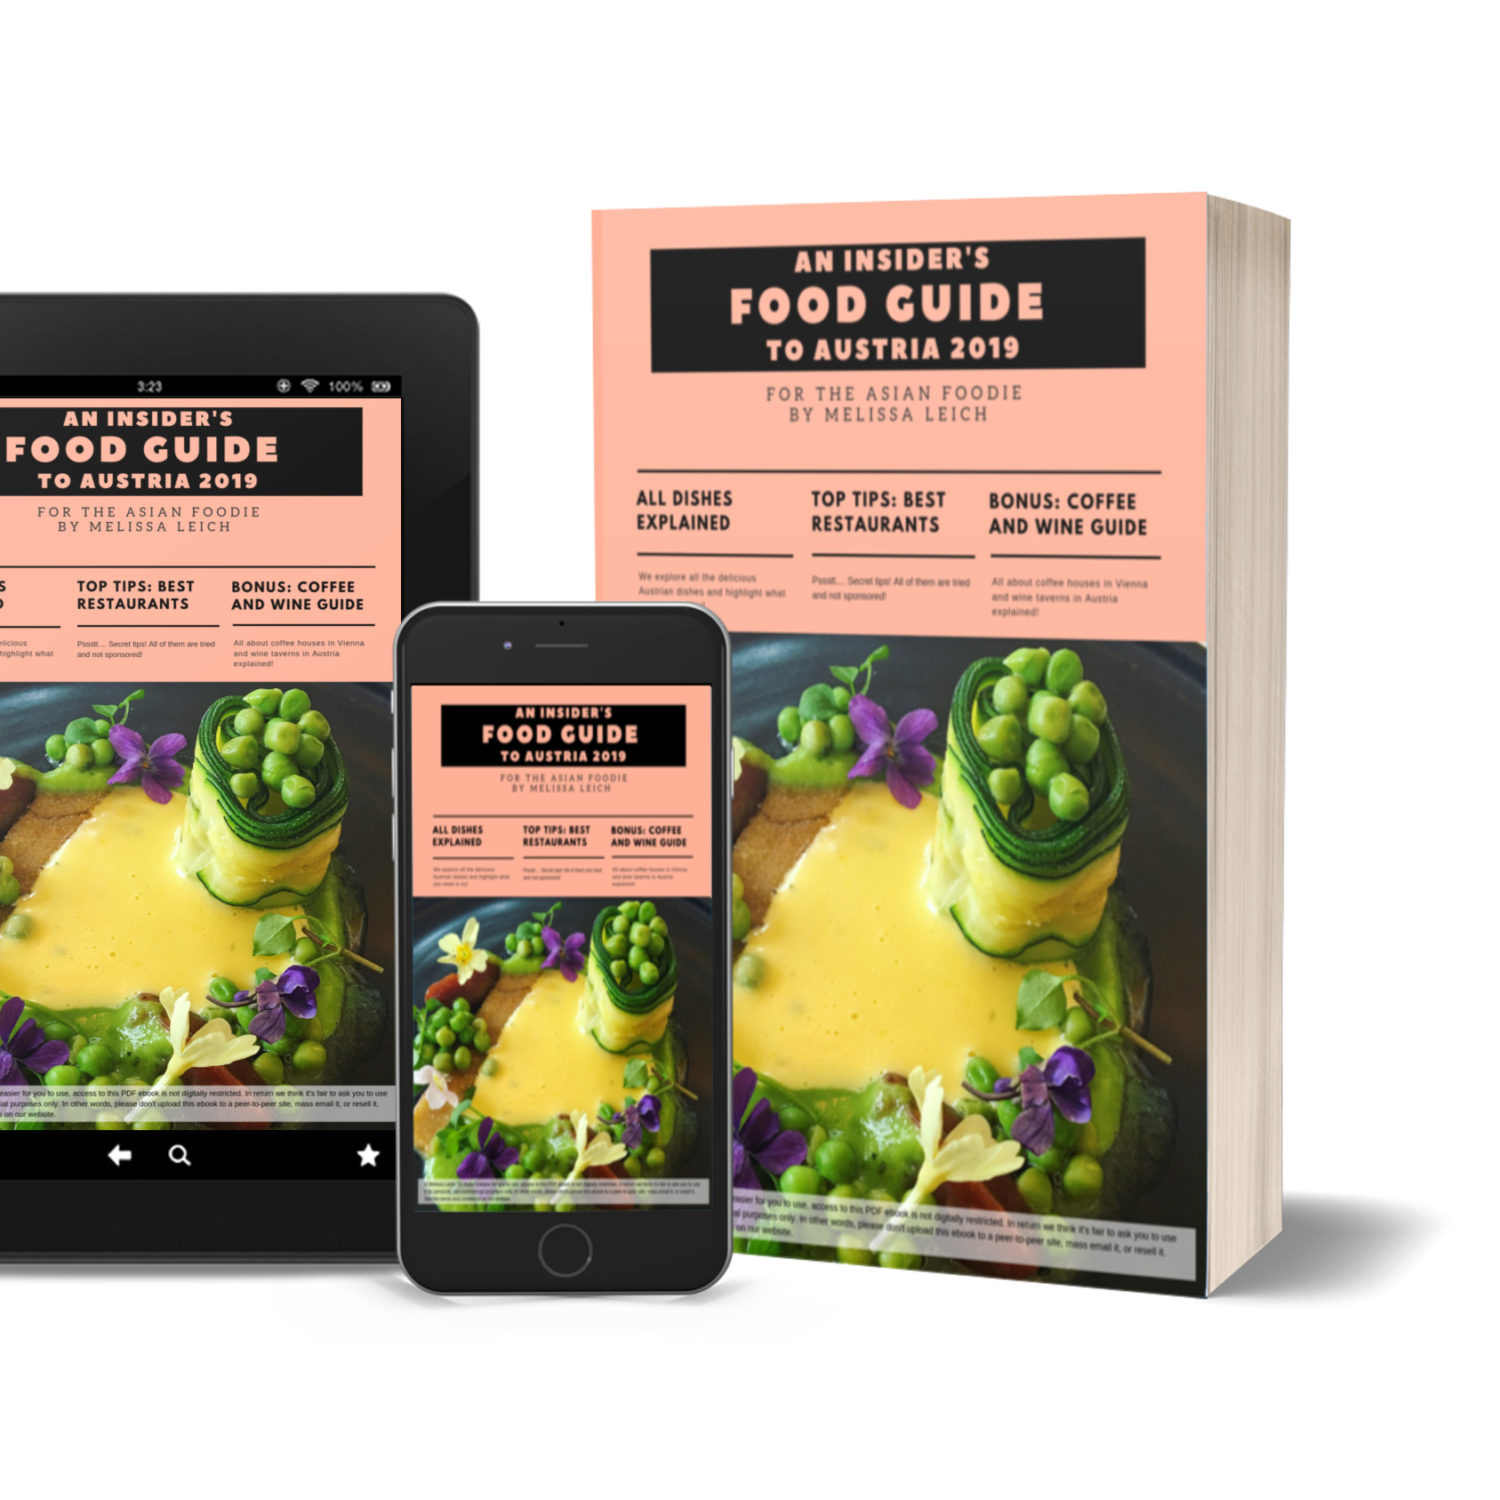 eBook: An Insider's Food Guide to Austria 2019 (for the Asian Foodie)